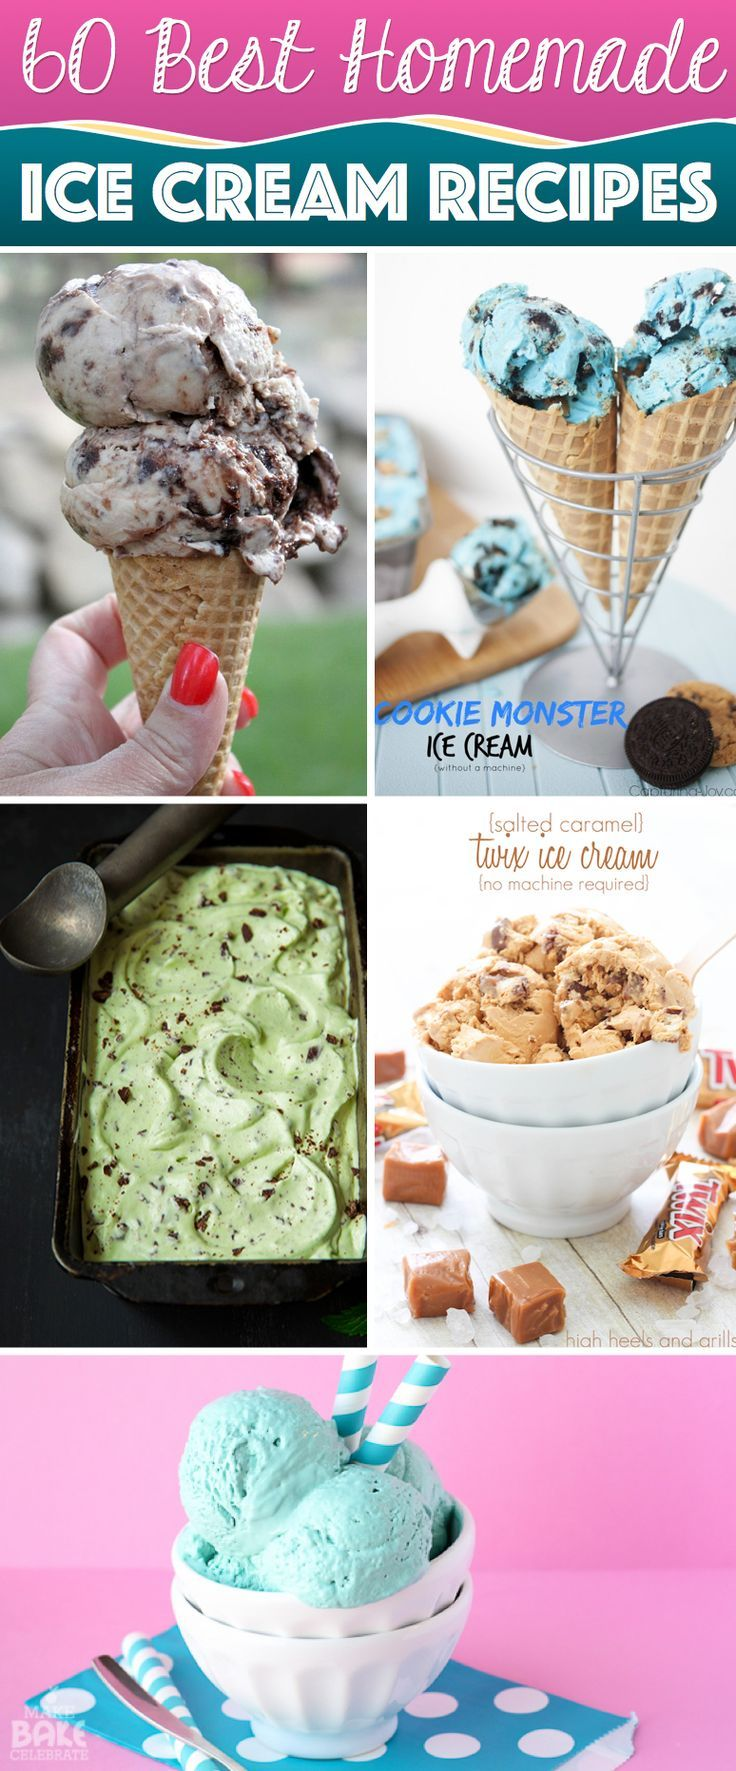 60 Easy Homemade Ice Cream Recipes Bringing Sweet Freshness to Your Day   See more diy videos: gwyl.io/